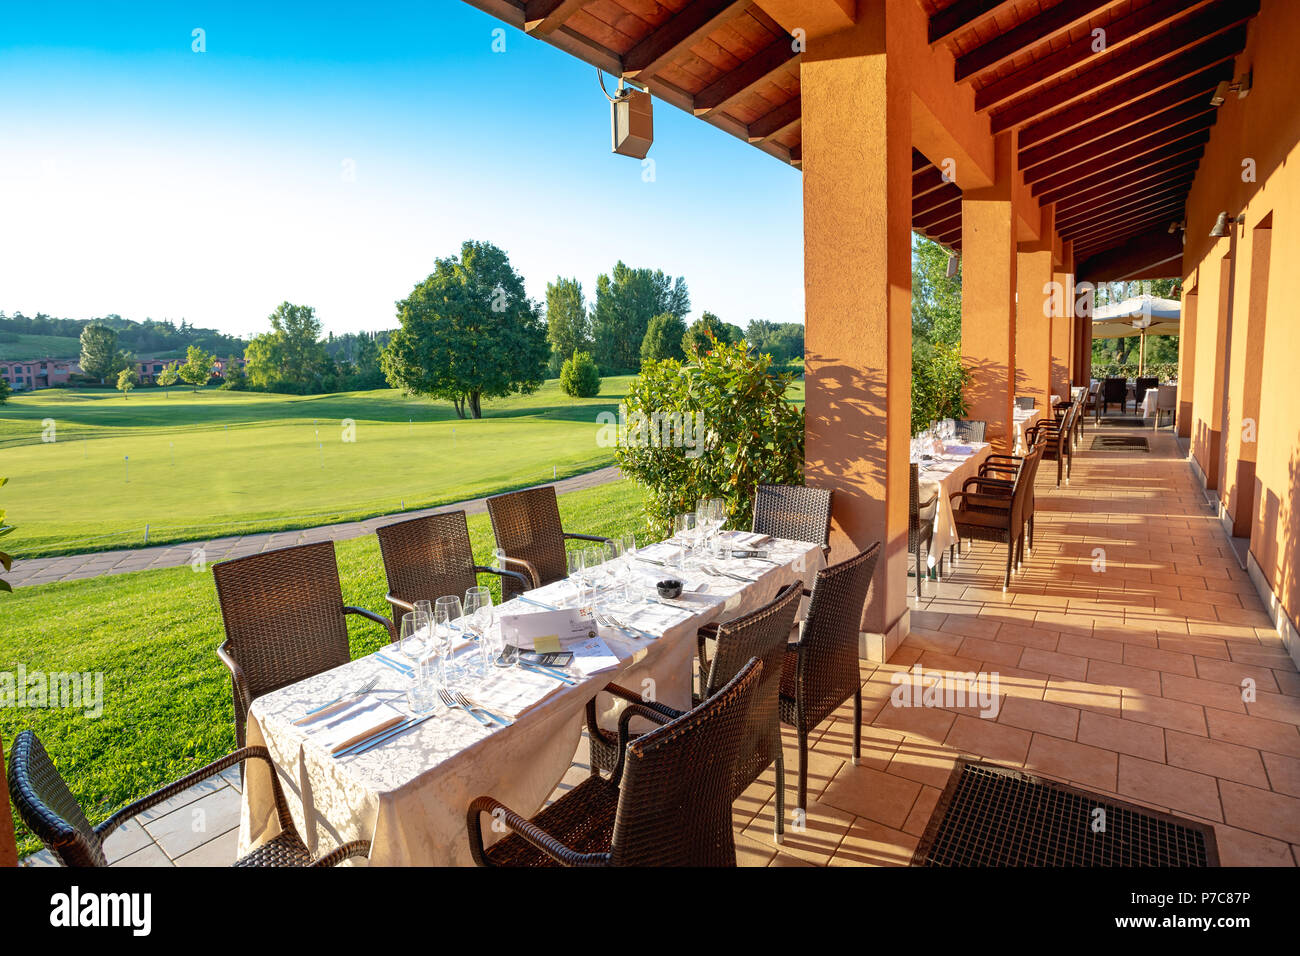 Outdoor restaurant terrace on golf club Le Fonti in Castel San Pietro Terme, Italy - Stock Image